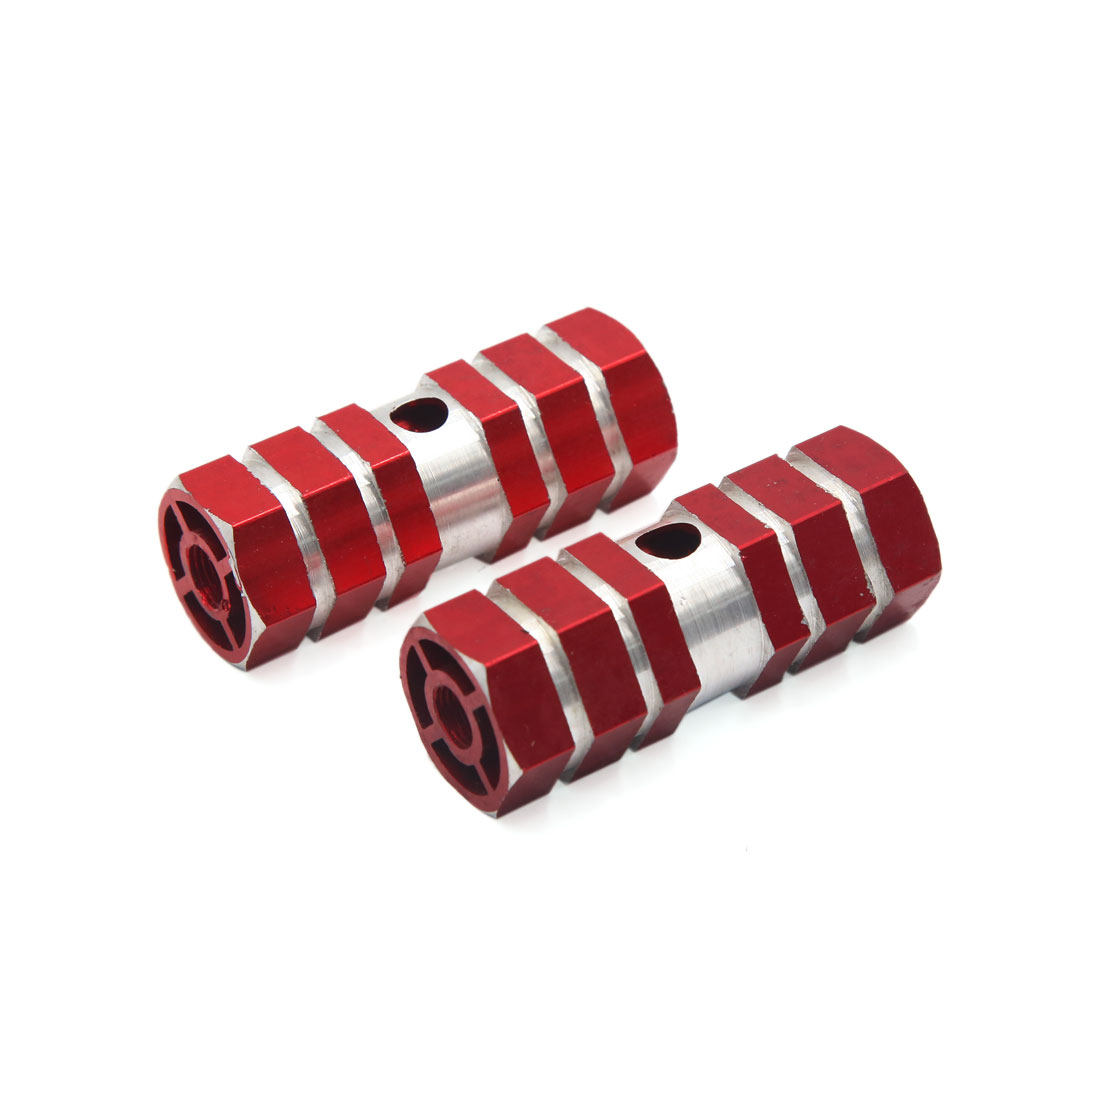 2 Pcs Red Aluminum Alloy Hexagonal Anti Slip Axle Foot Pegs for Cycling Bike Bicycle